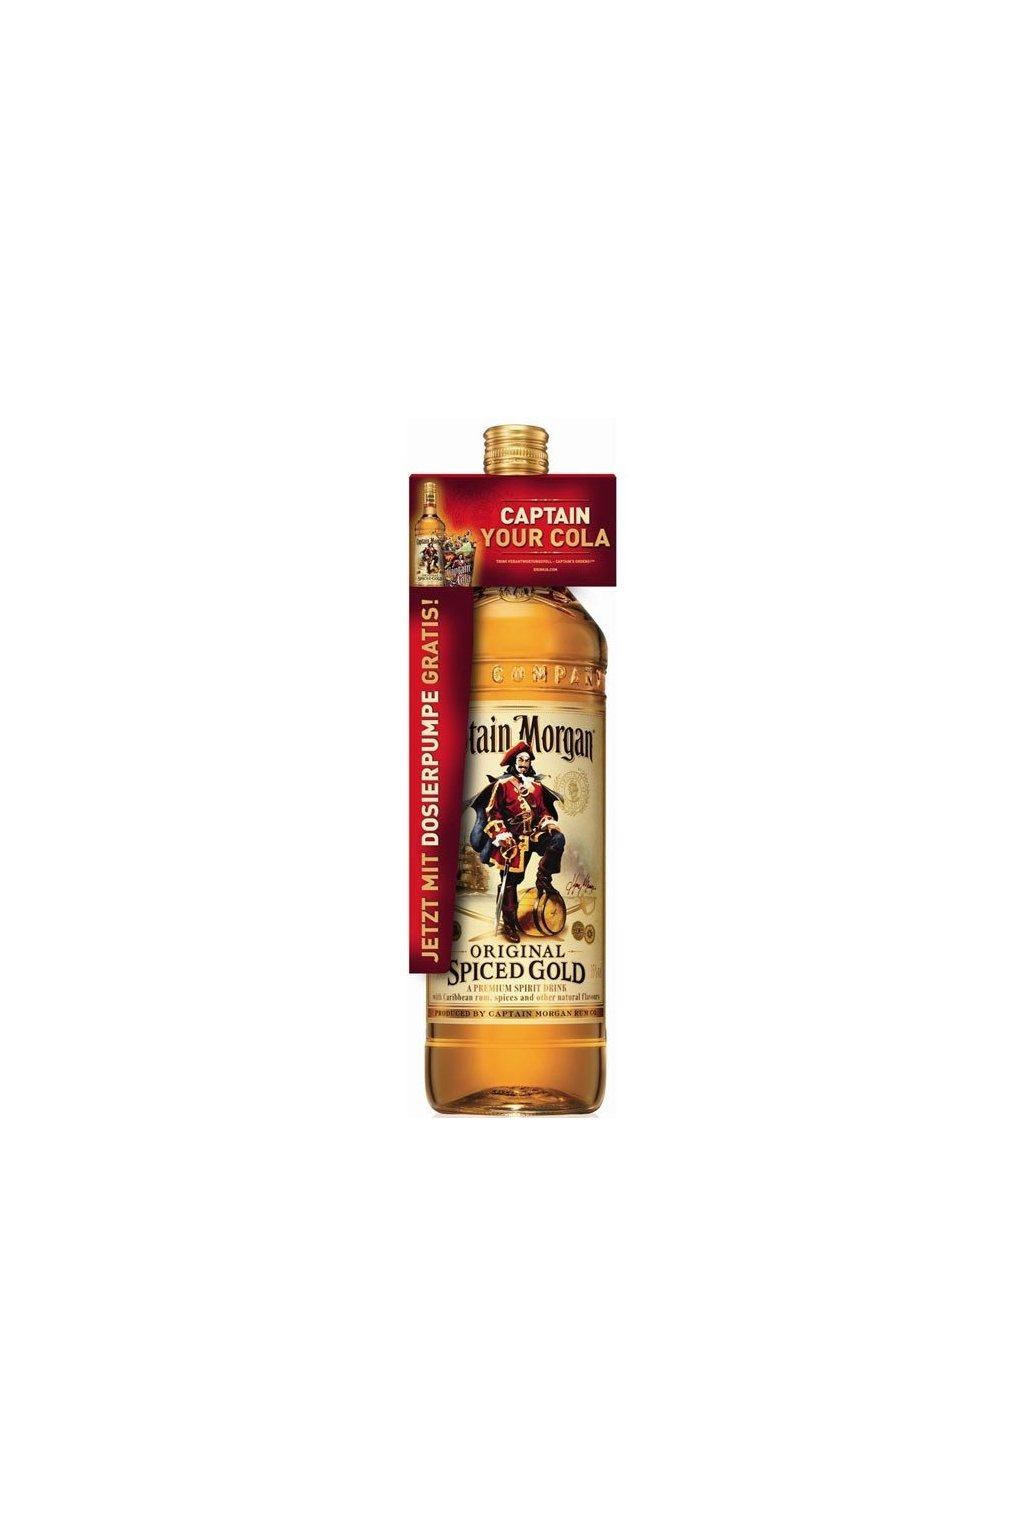 captain morgan spiced 35 3l resized 1439 3 700 700 ffffff